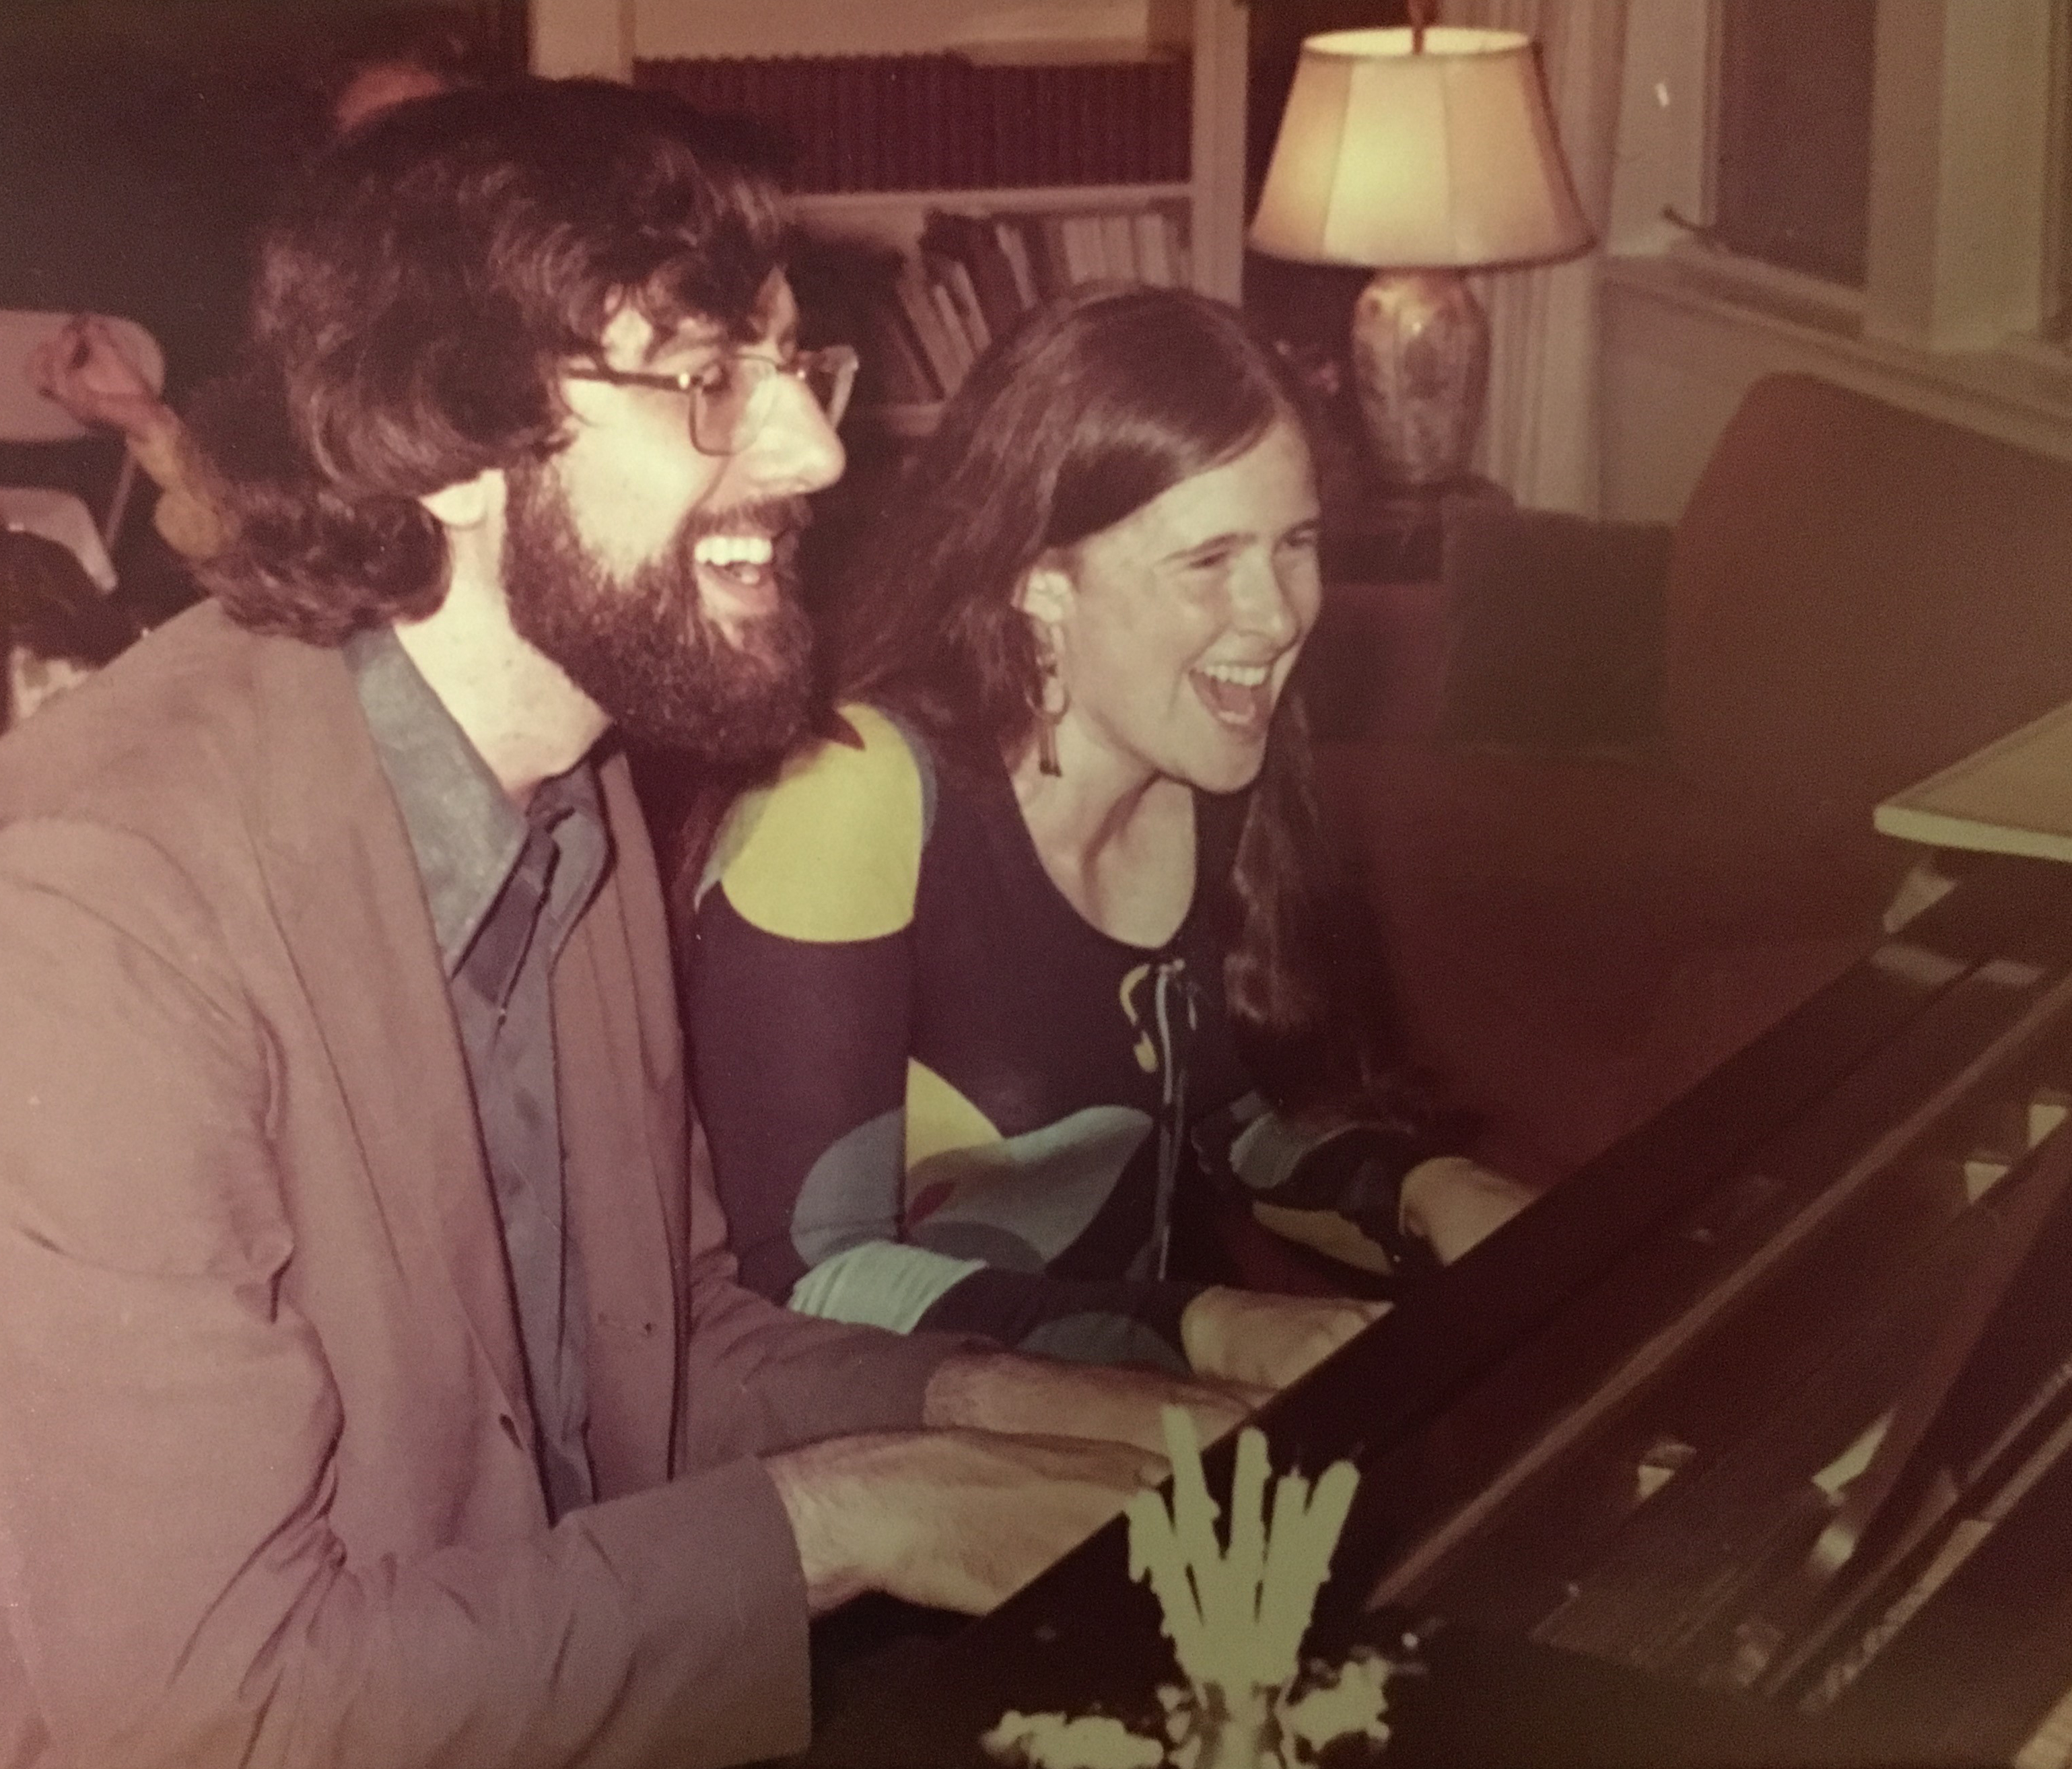 Joel Gressel and Eleanor Cory laughing while playing on a piano together.